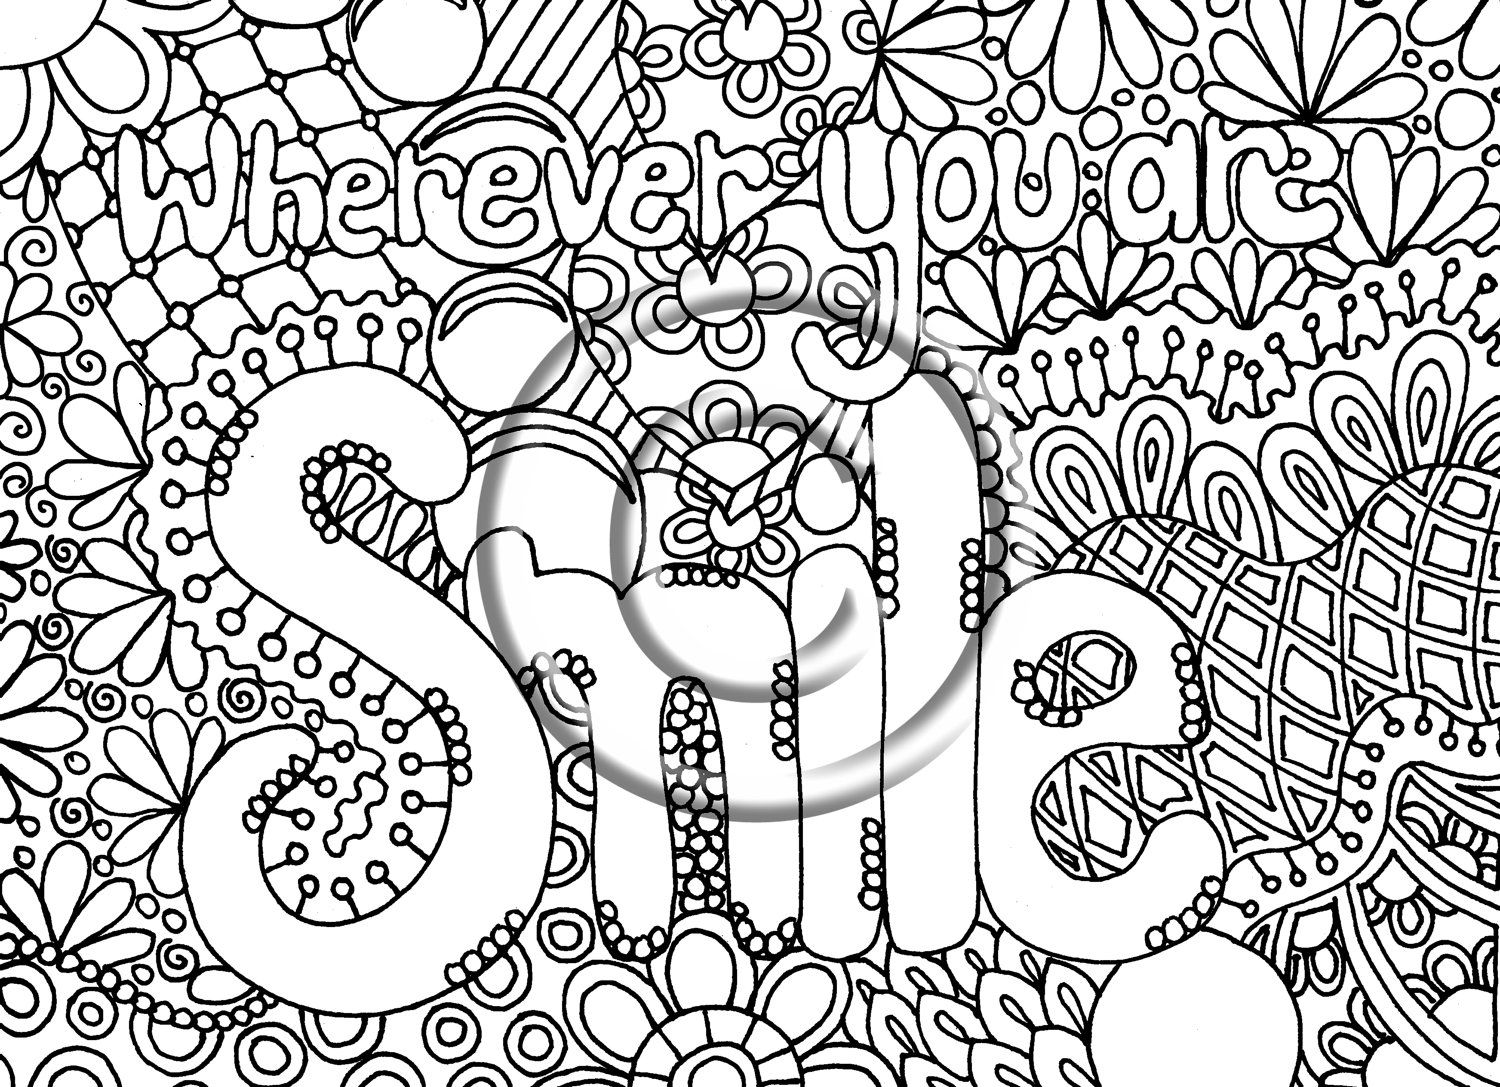 Digital Download Coloring Page Hand Drawn Zentangle ...